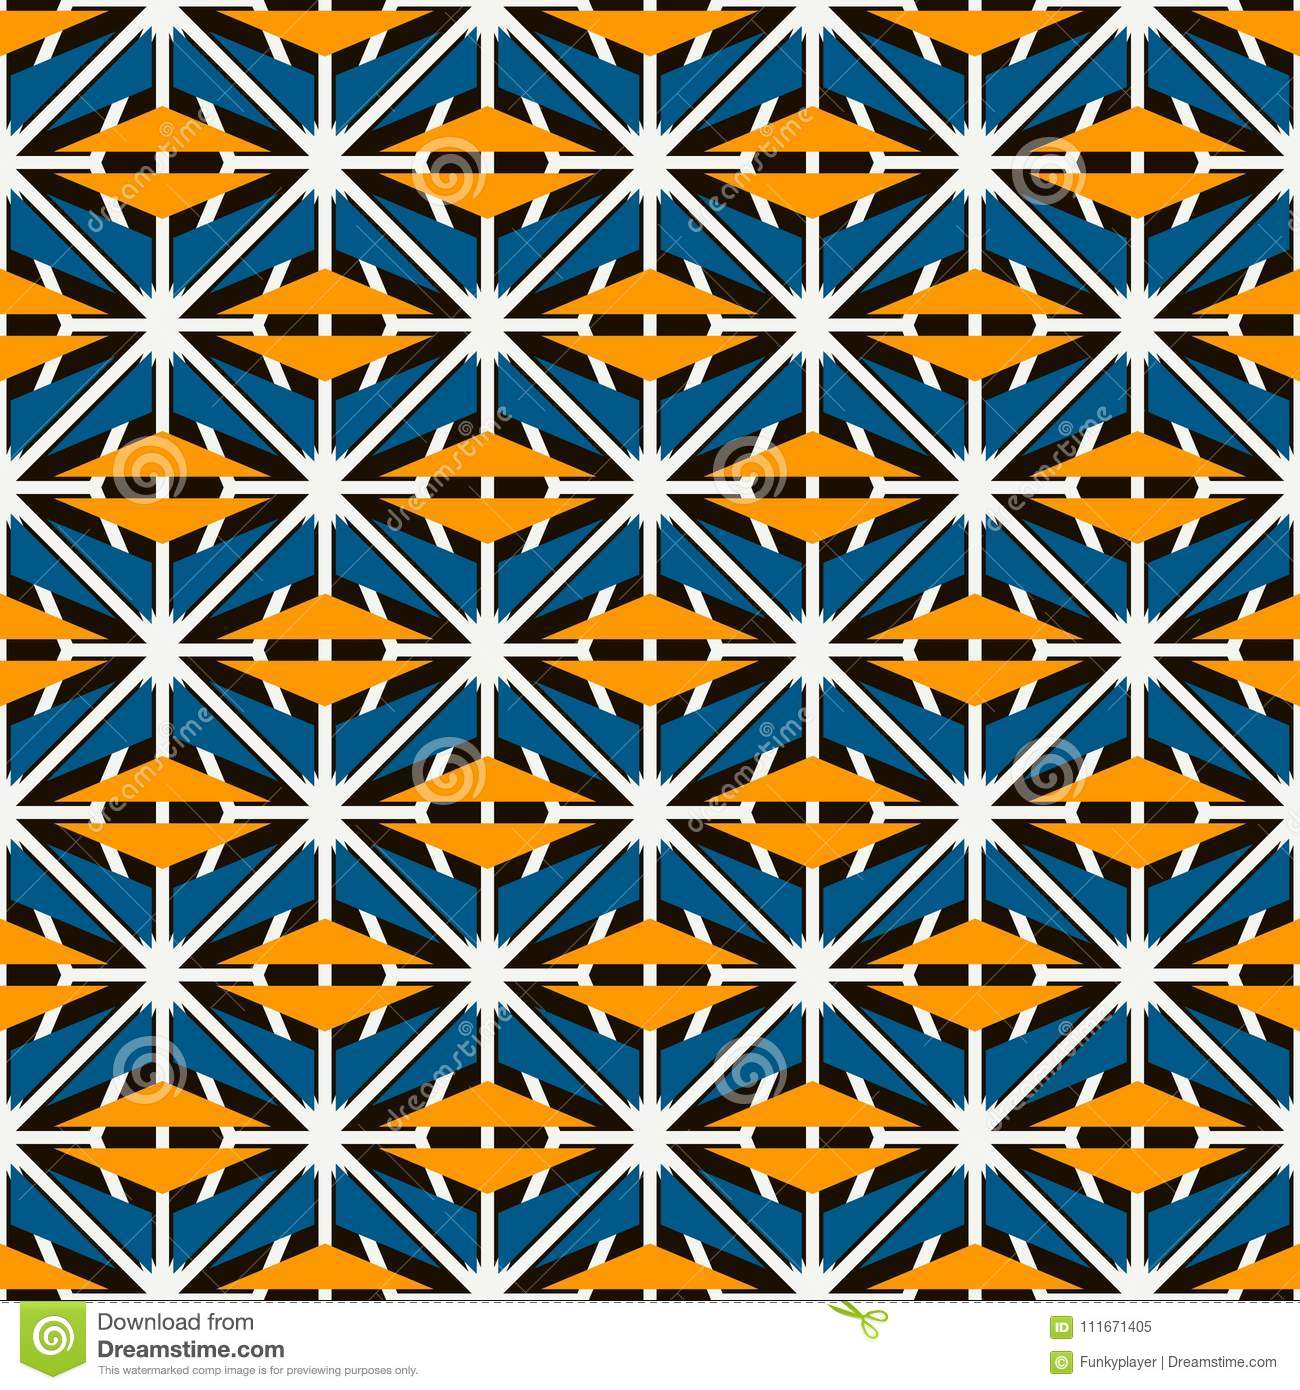 African style seamless surface pattern with abstract figures. Bright ethnic and tribal print grid geometric forms